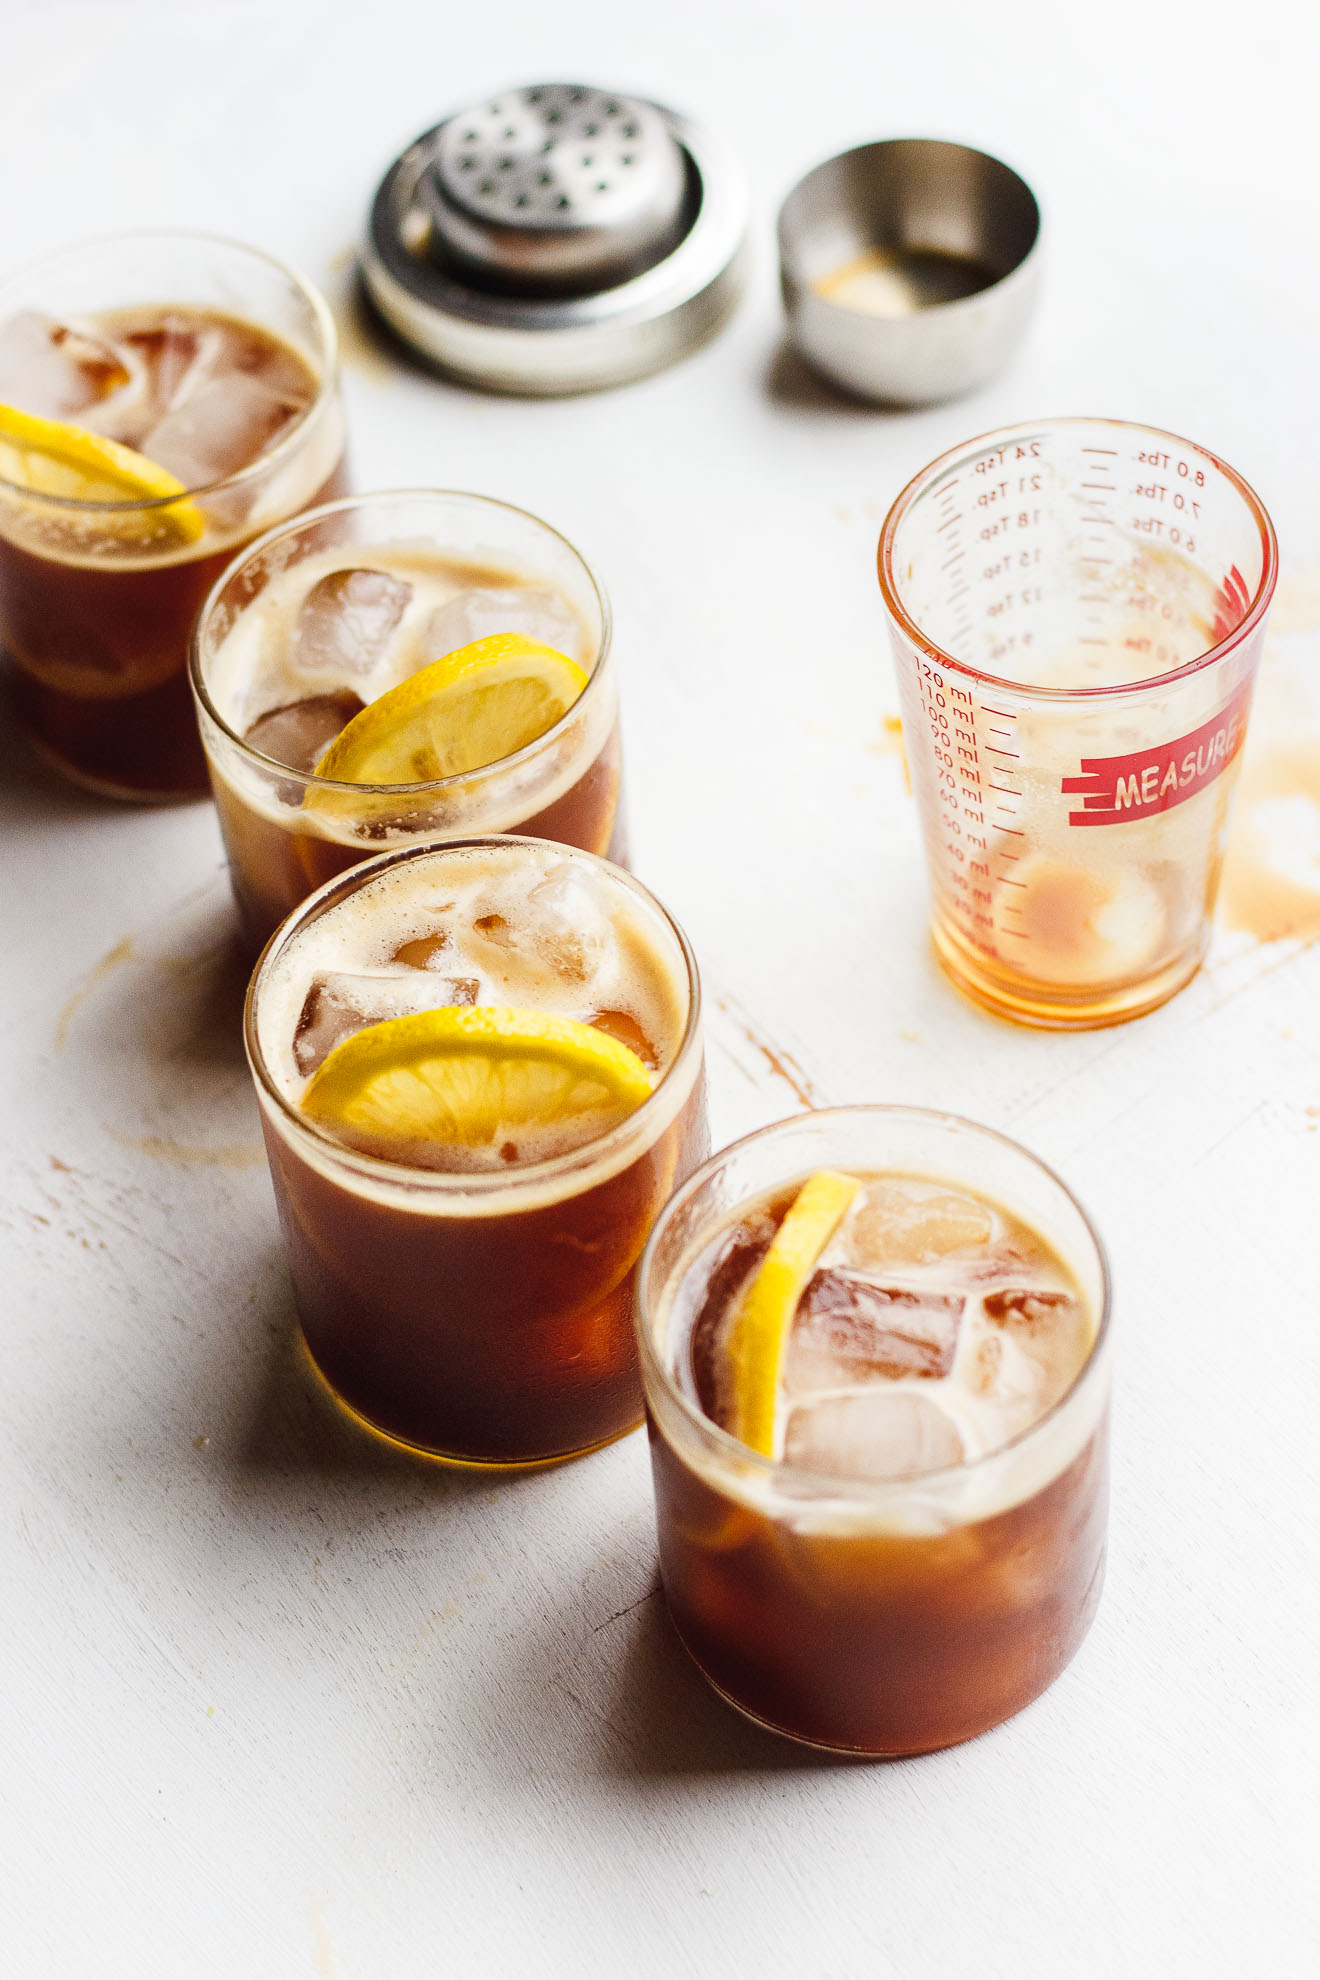 Naturally Sweetened Iced Coffee Lemonade | Iced coffee lemonade naturally sweetened with lemon juice and stevia is a natural combination. Iced coffee lemonade is refreshing and delicious.